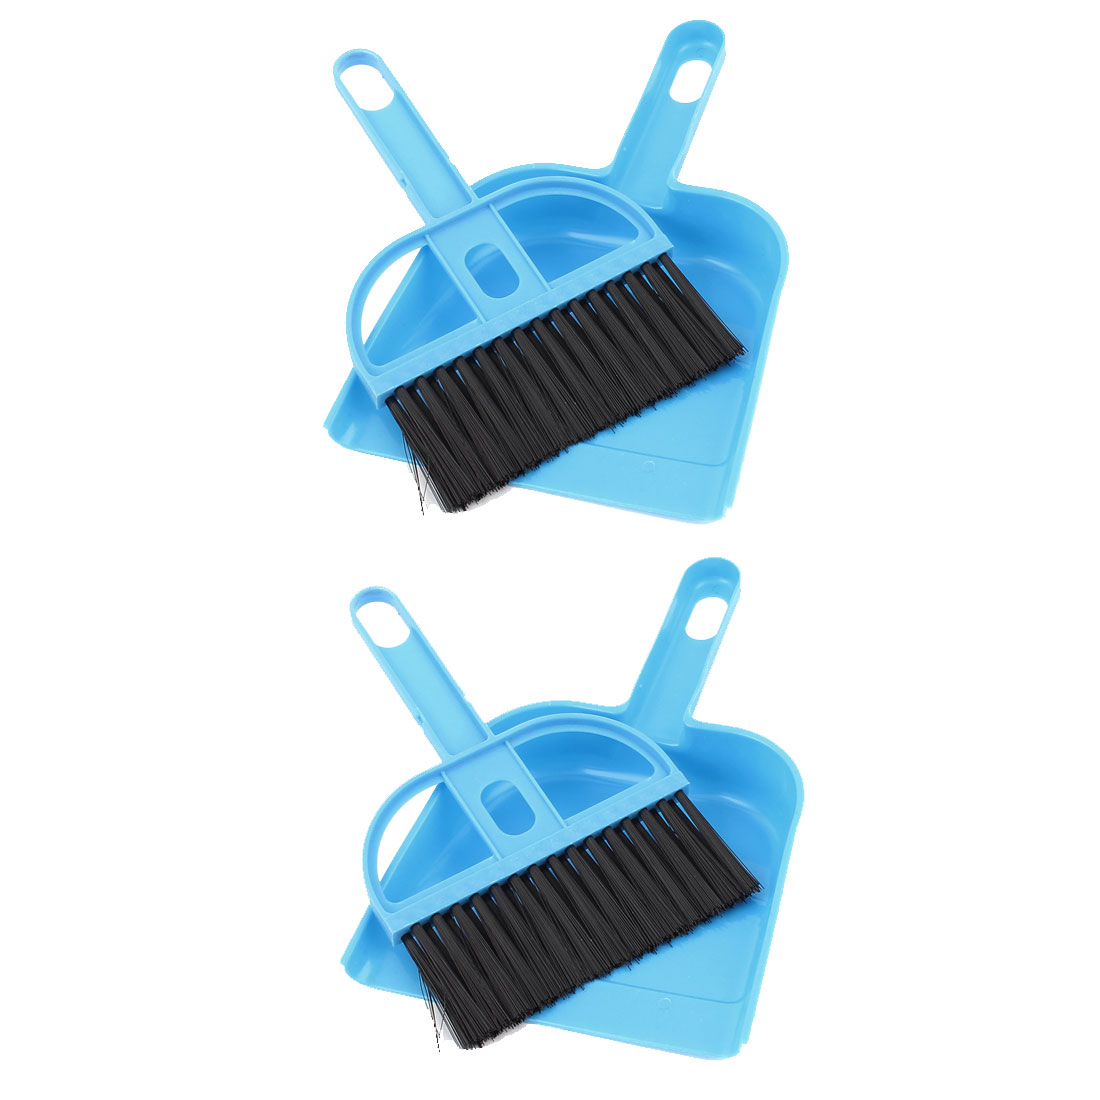 Keyboard Air Outlet Vent Cleaner Sweeping Brush Dustpan Blue 2 Sets